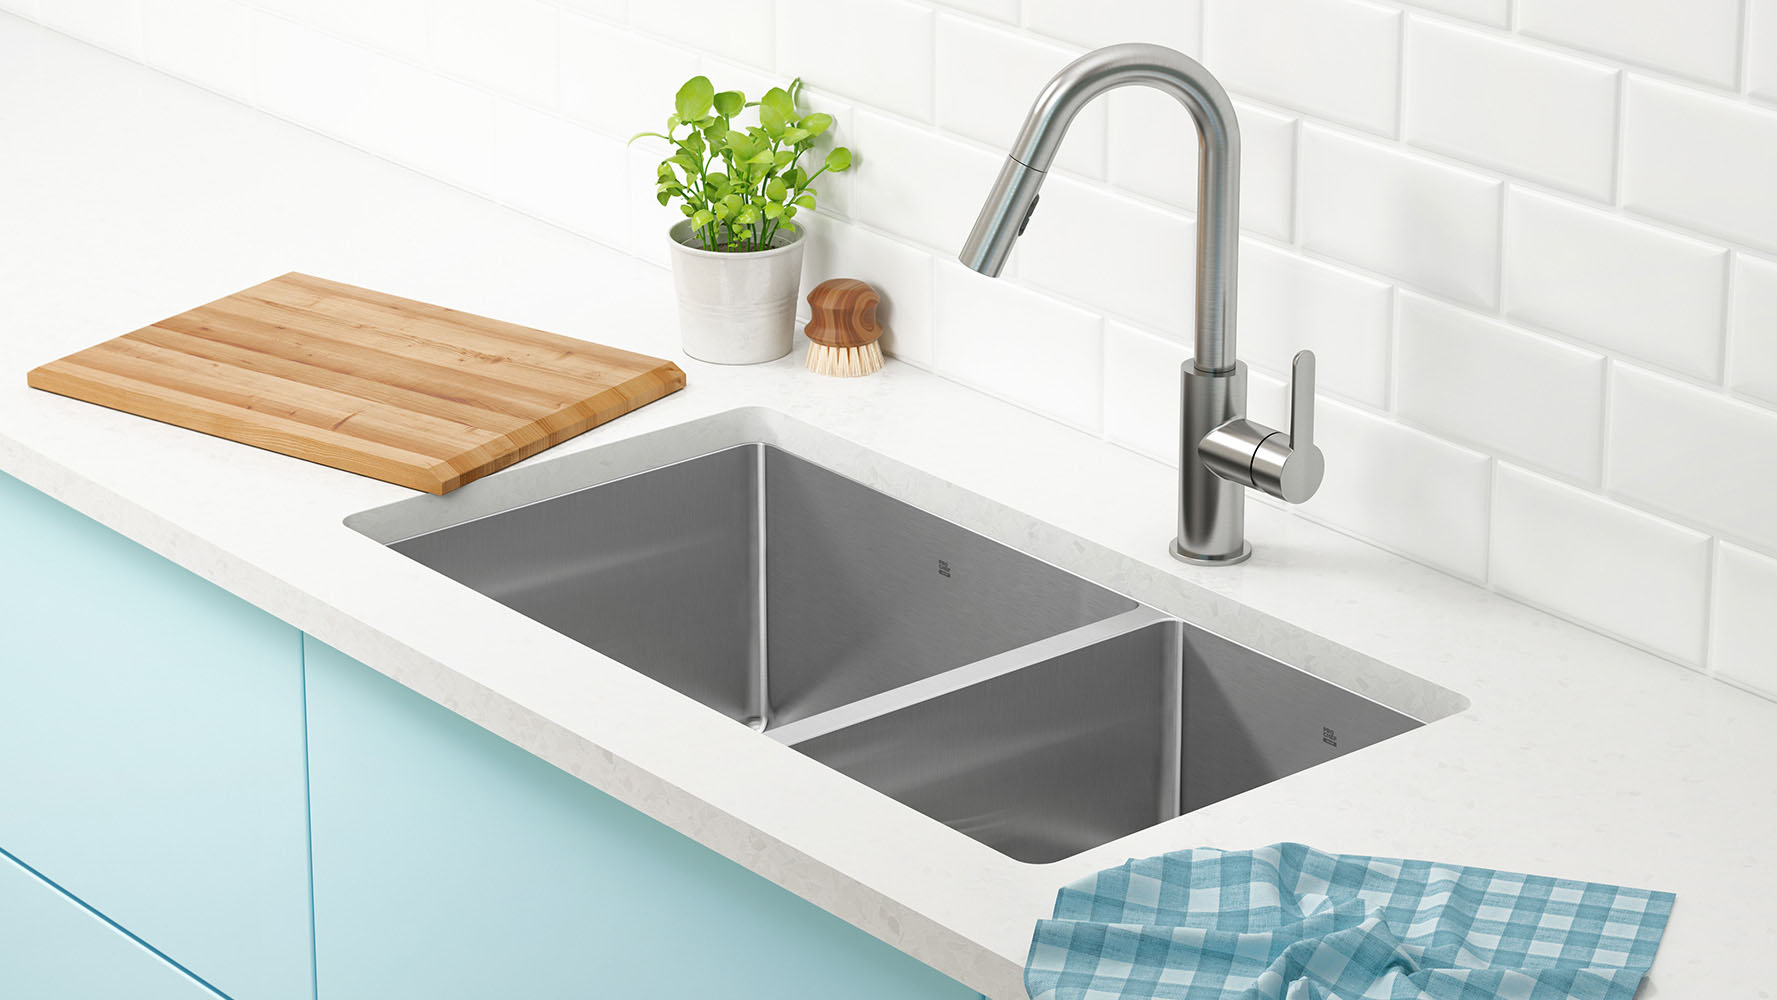 kitchen sinks cost for remodel stainless steel handcrafted proinox h75 prochef